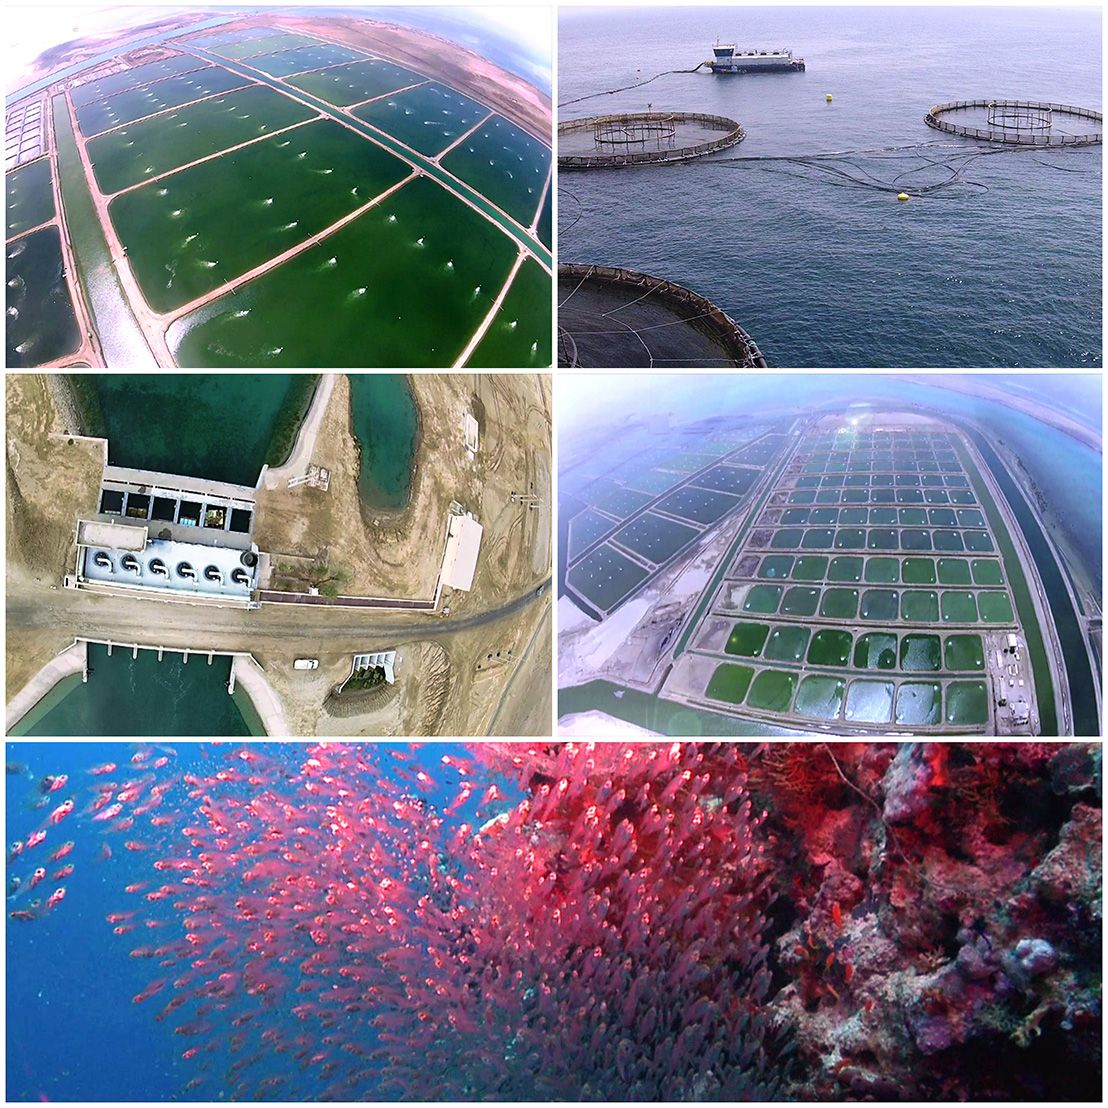 With 200 km2 of land and 65 km of coastline, National #Aquaculture Group is designed to produce more than 100,000 tons a year of the very finest quality #seafood